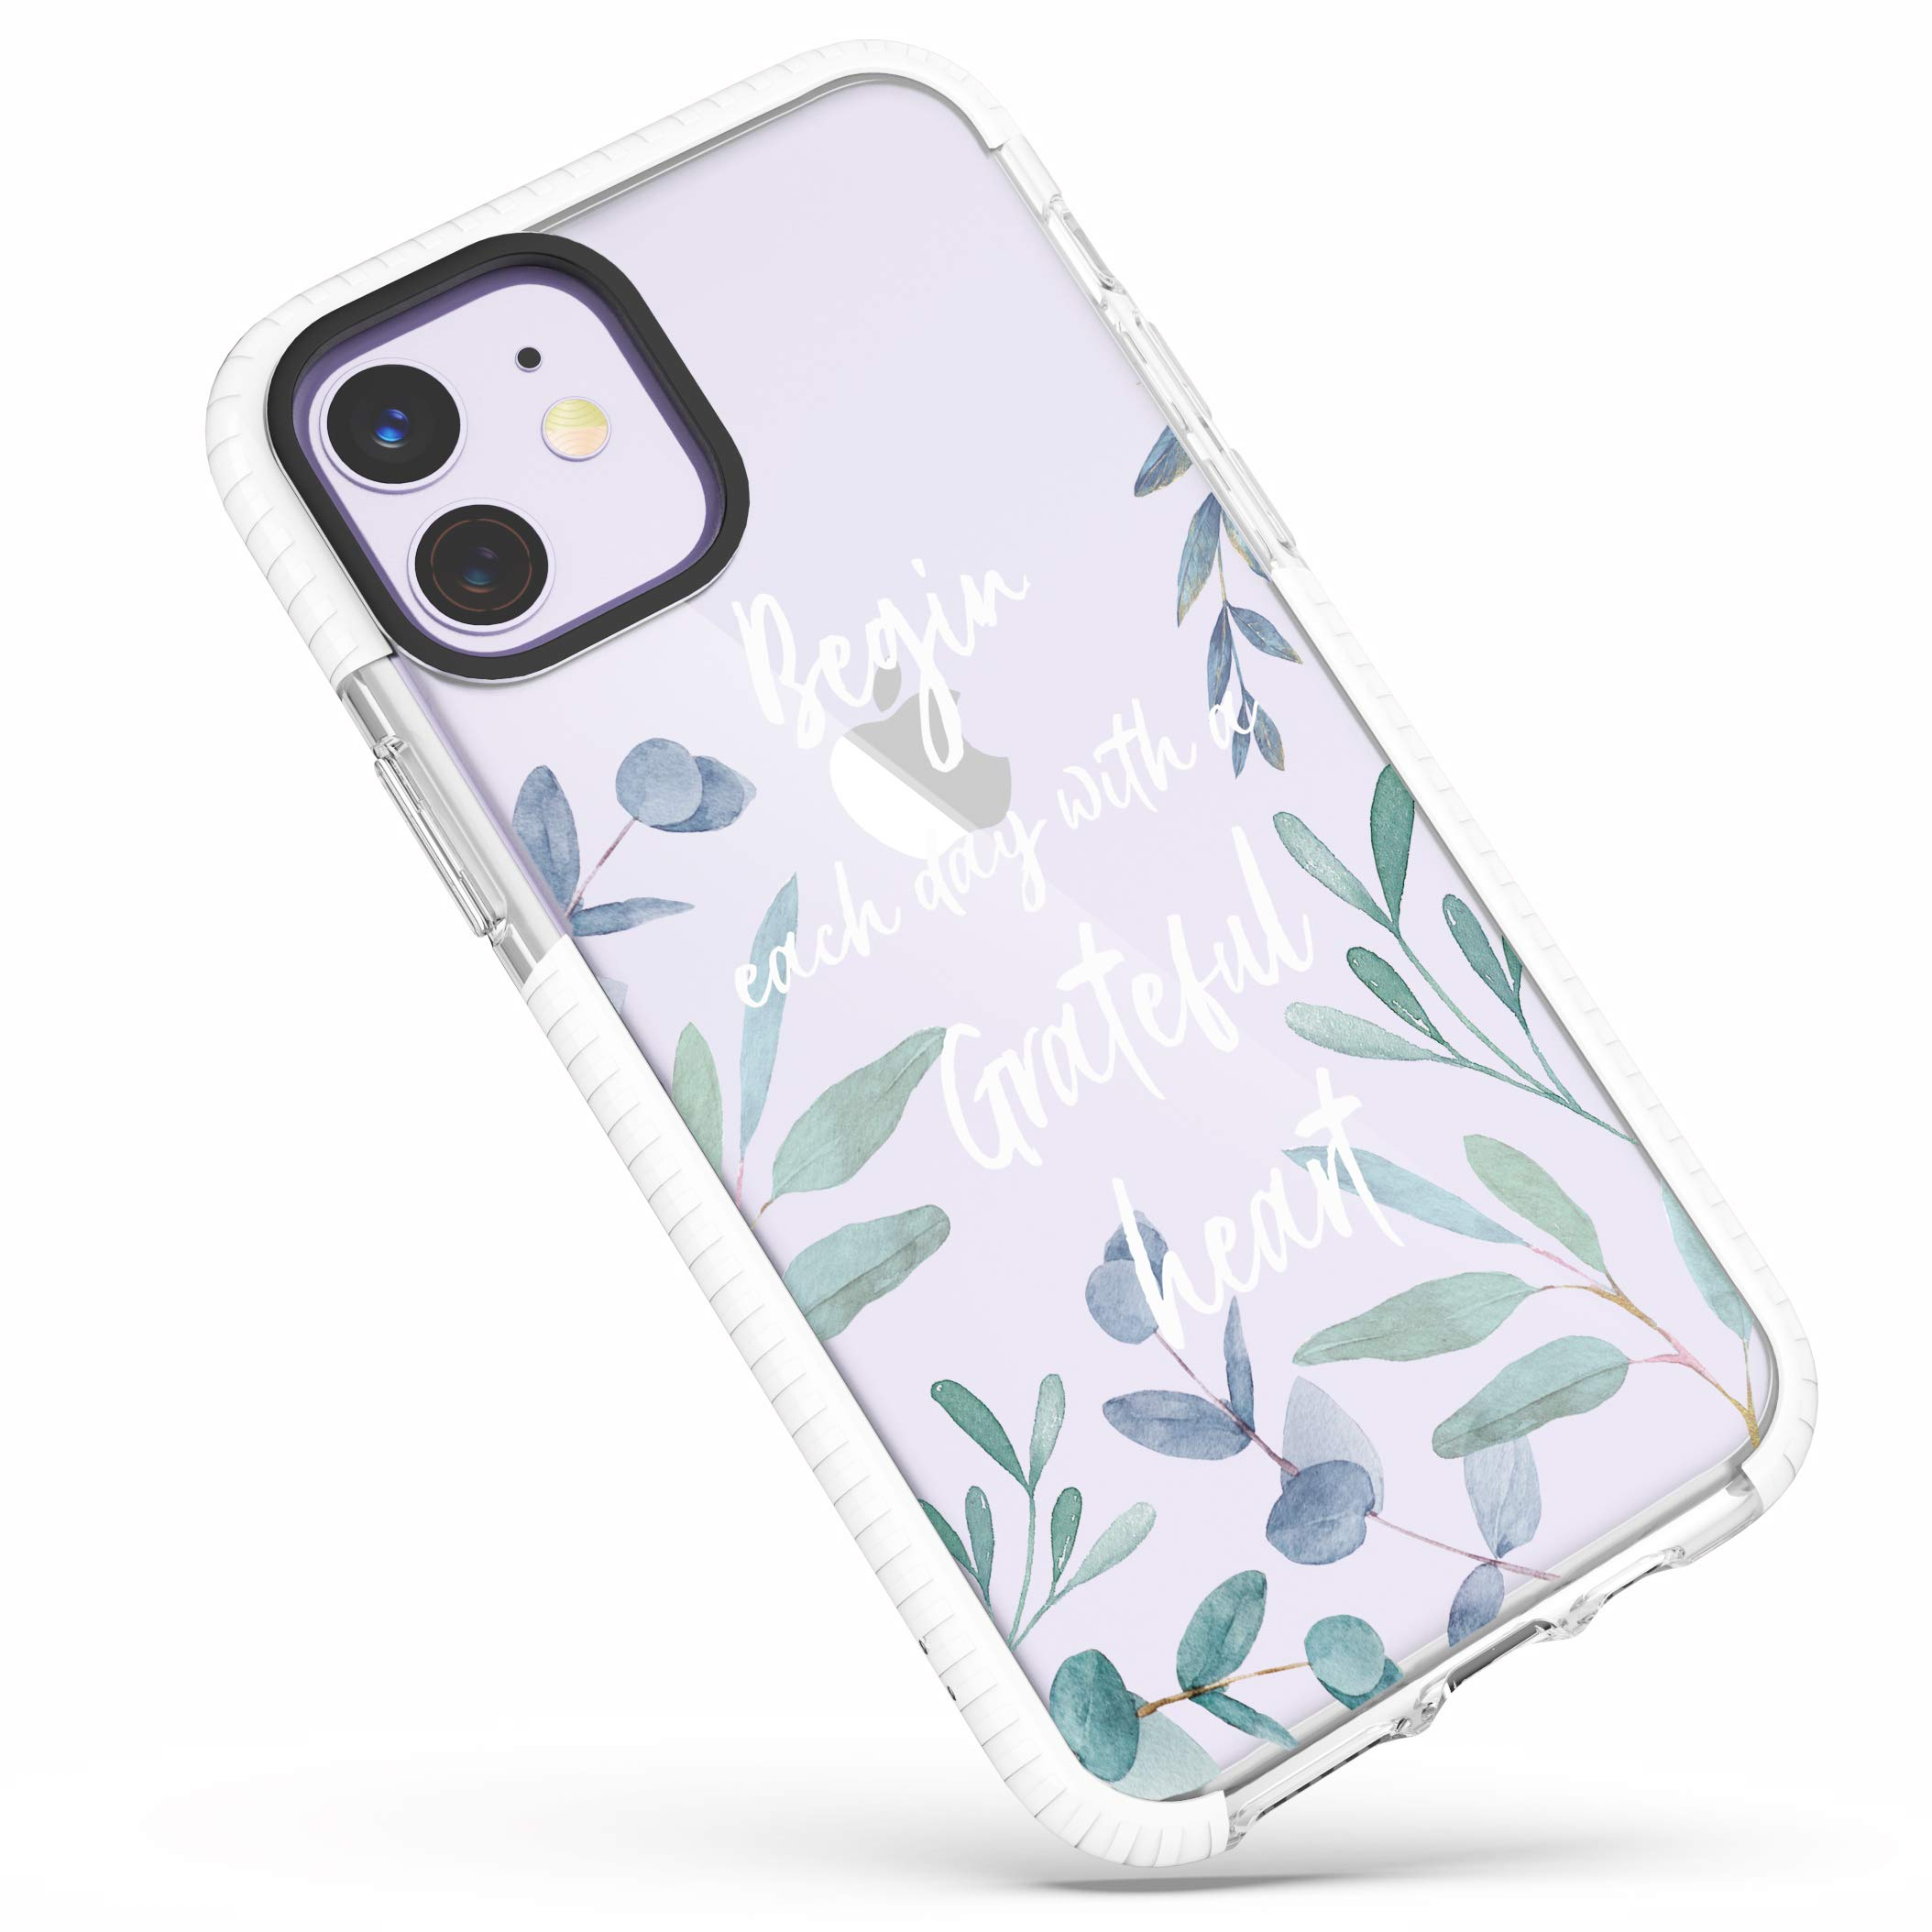 iPhone 11 Case,Cute Flowers Florals Green Leaves Spring Blossoms Christian Inspirational Bible Verses Christ Quotes Girls Women Soft Protective Clear Case with Design Case Compatible for iPhone 11